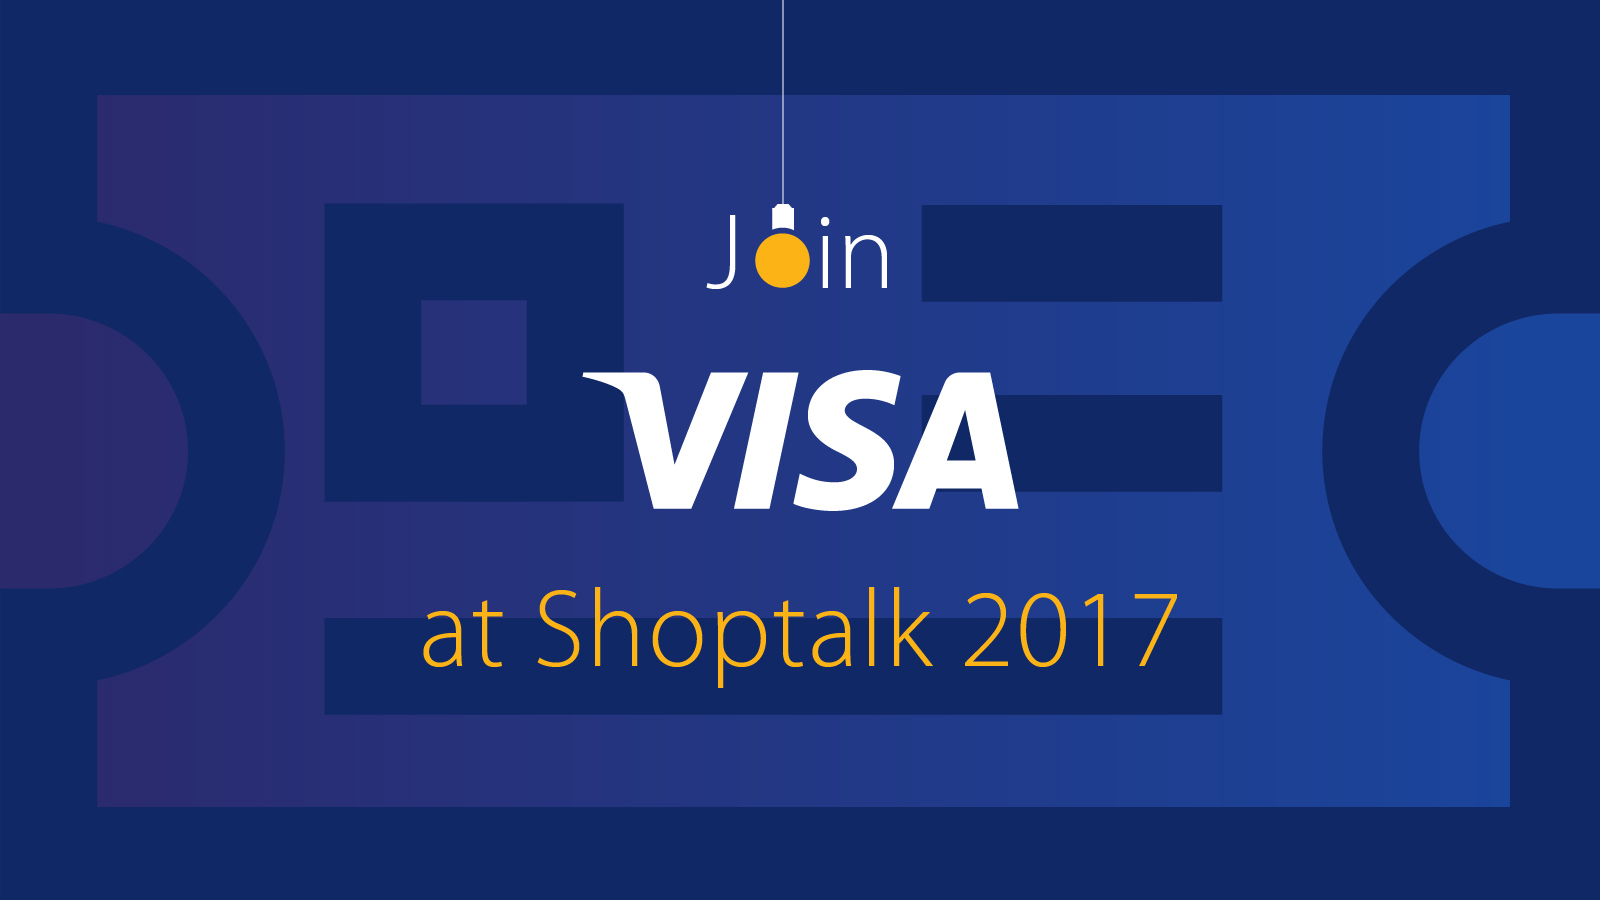 Visa at shoptalk